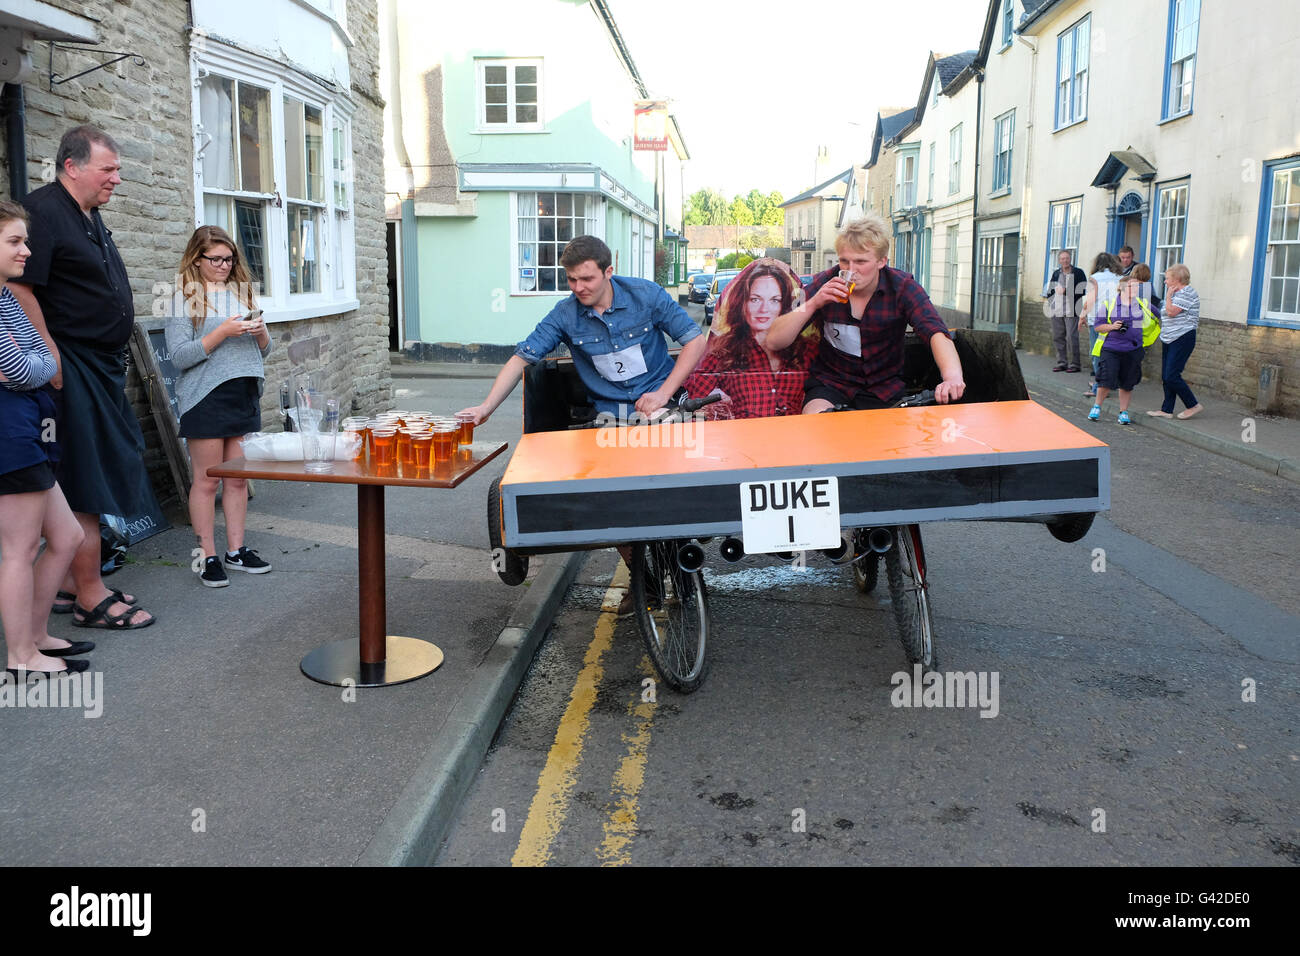 Kington, Herefordshire, UK - Saturday 18th June 2016 - The Dukes of Hergest team stop for a beer during the 40th - Stock Image